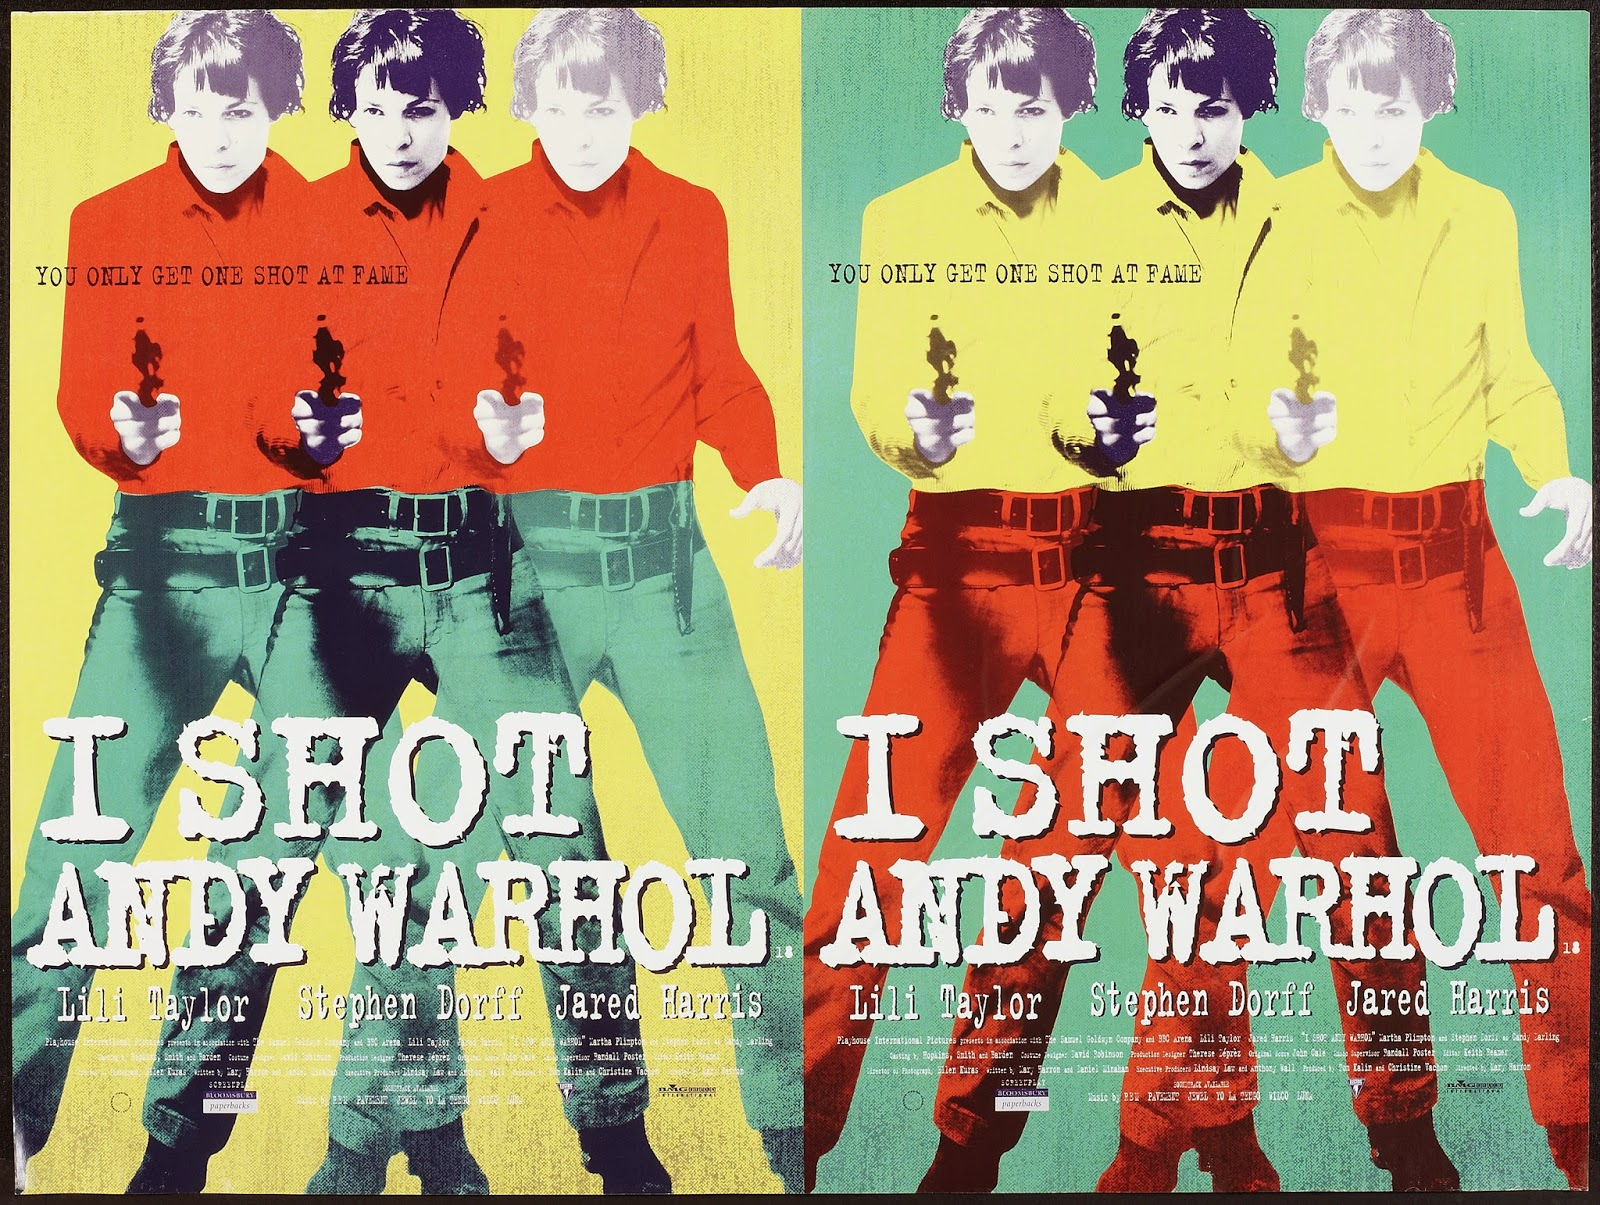 I SHOT ANDY WARHOL - UK Poster 1